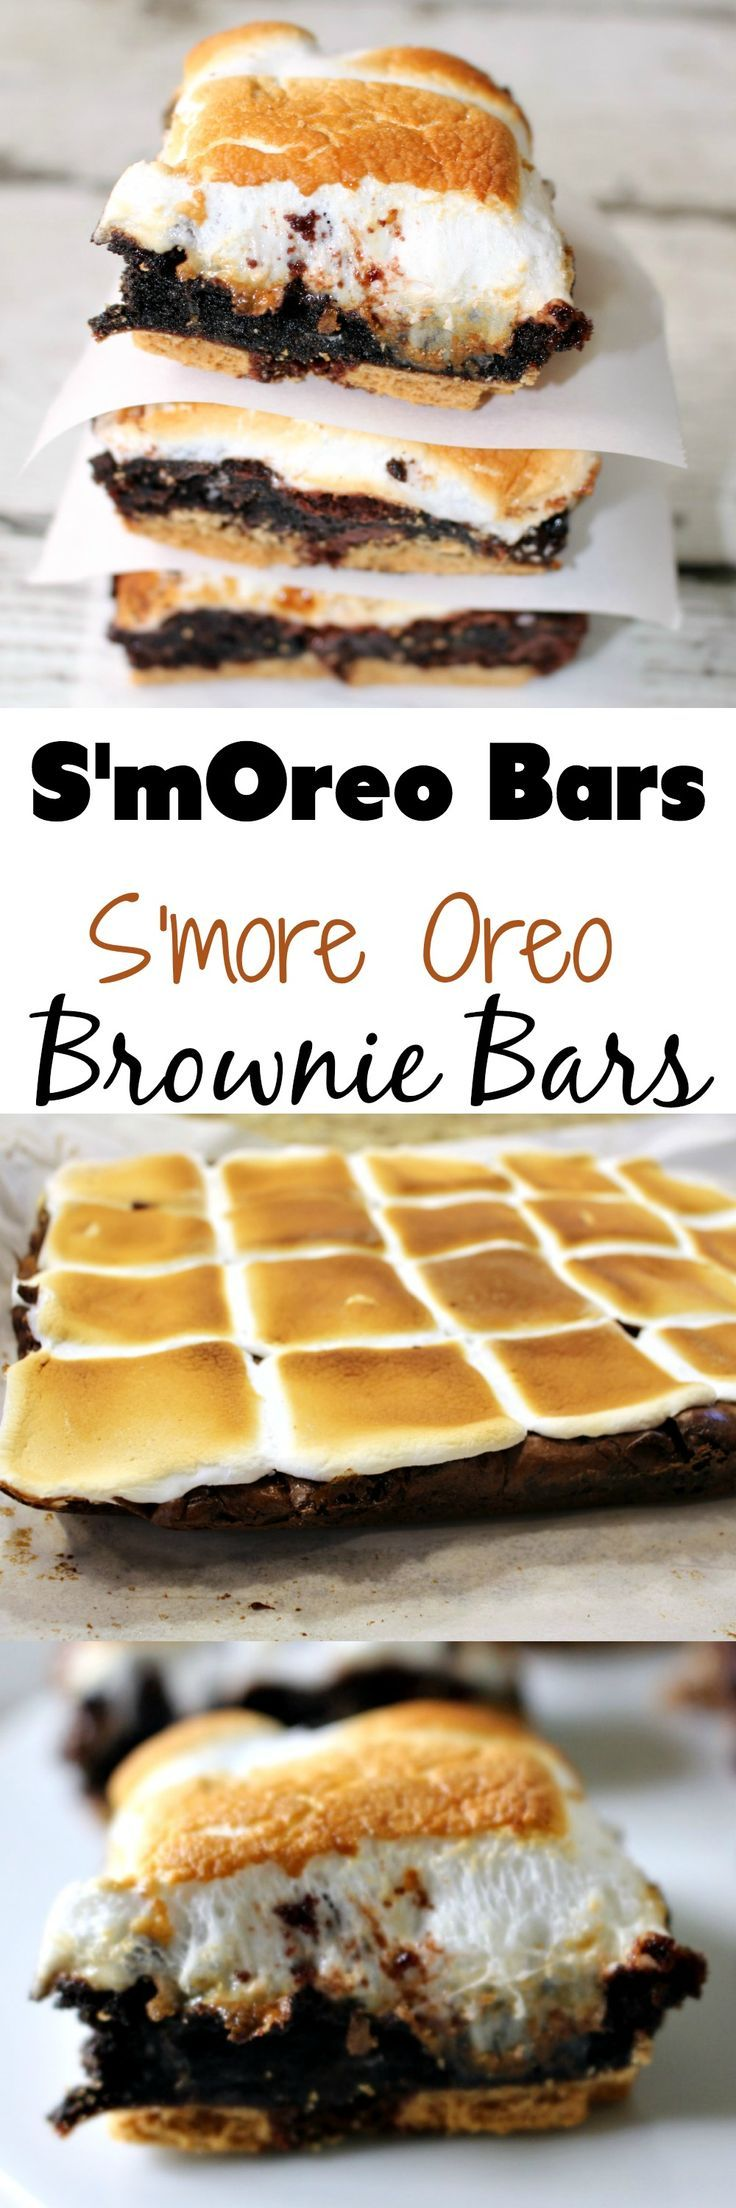 These S'more Oreo Brownie Bars aka the S'mOreo is the perfect summertime dessert (or anytime for that matter) and best of all it is really easy to make!!